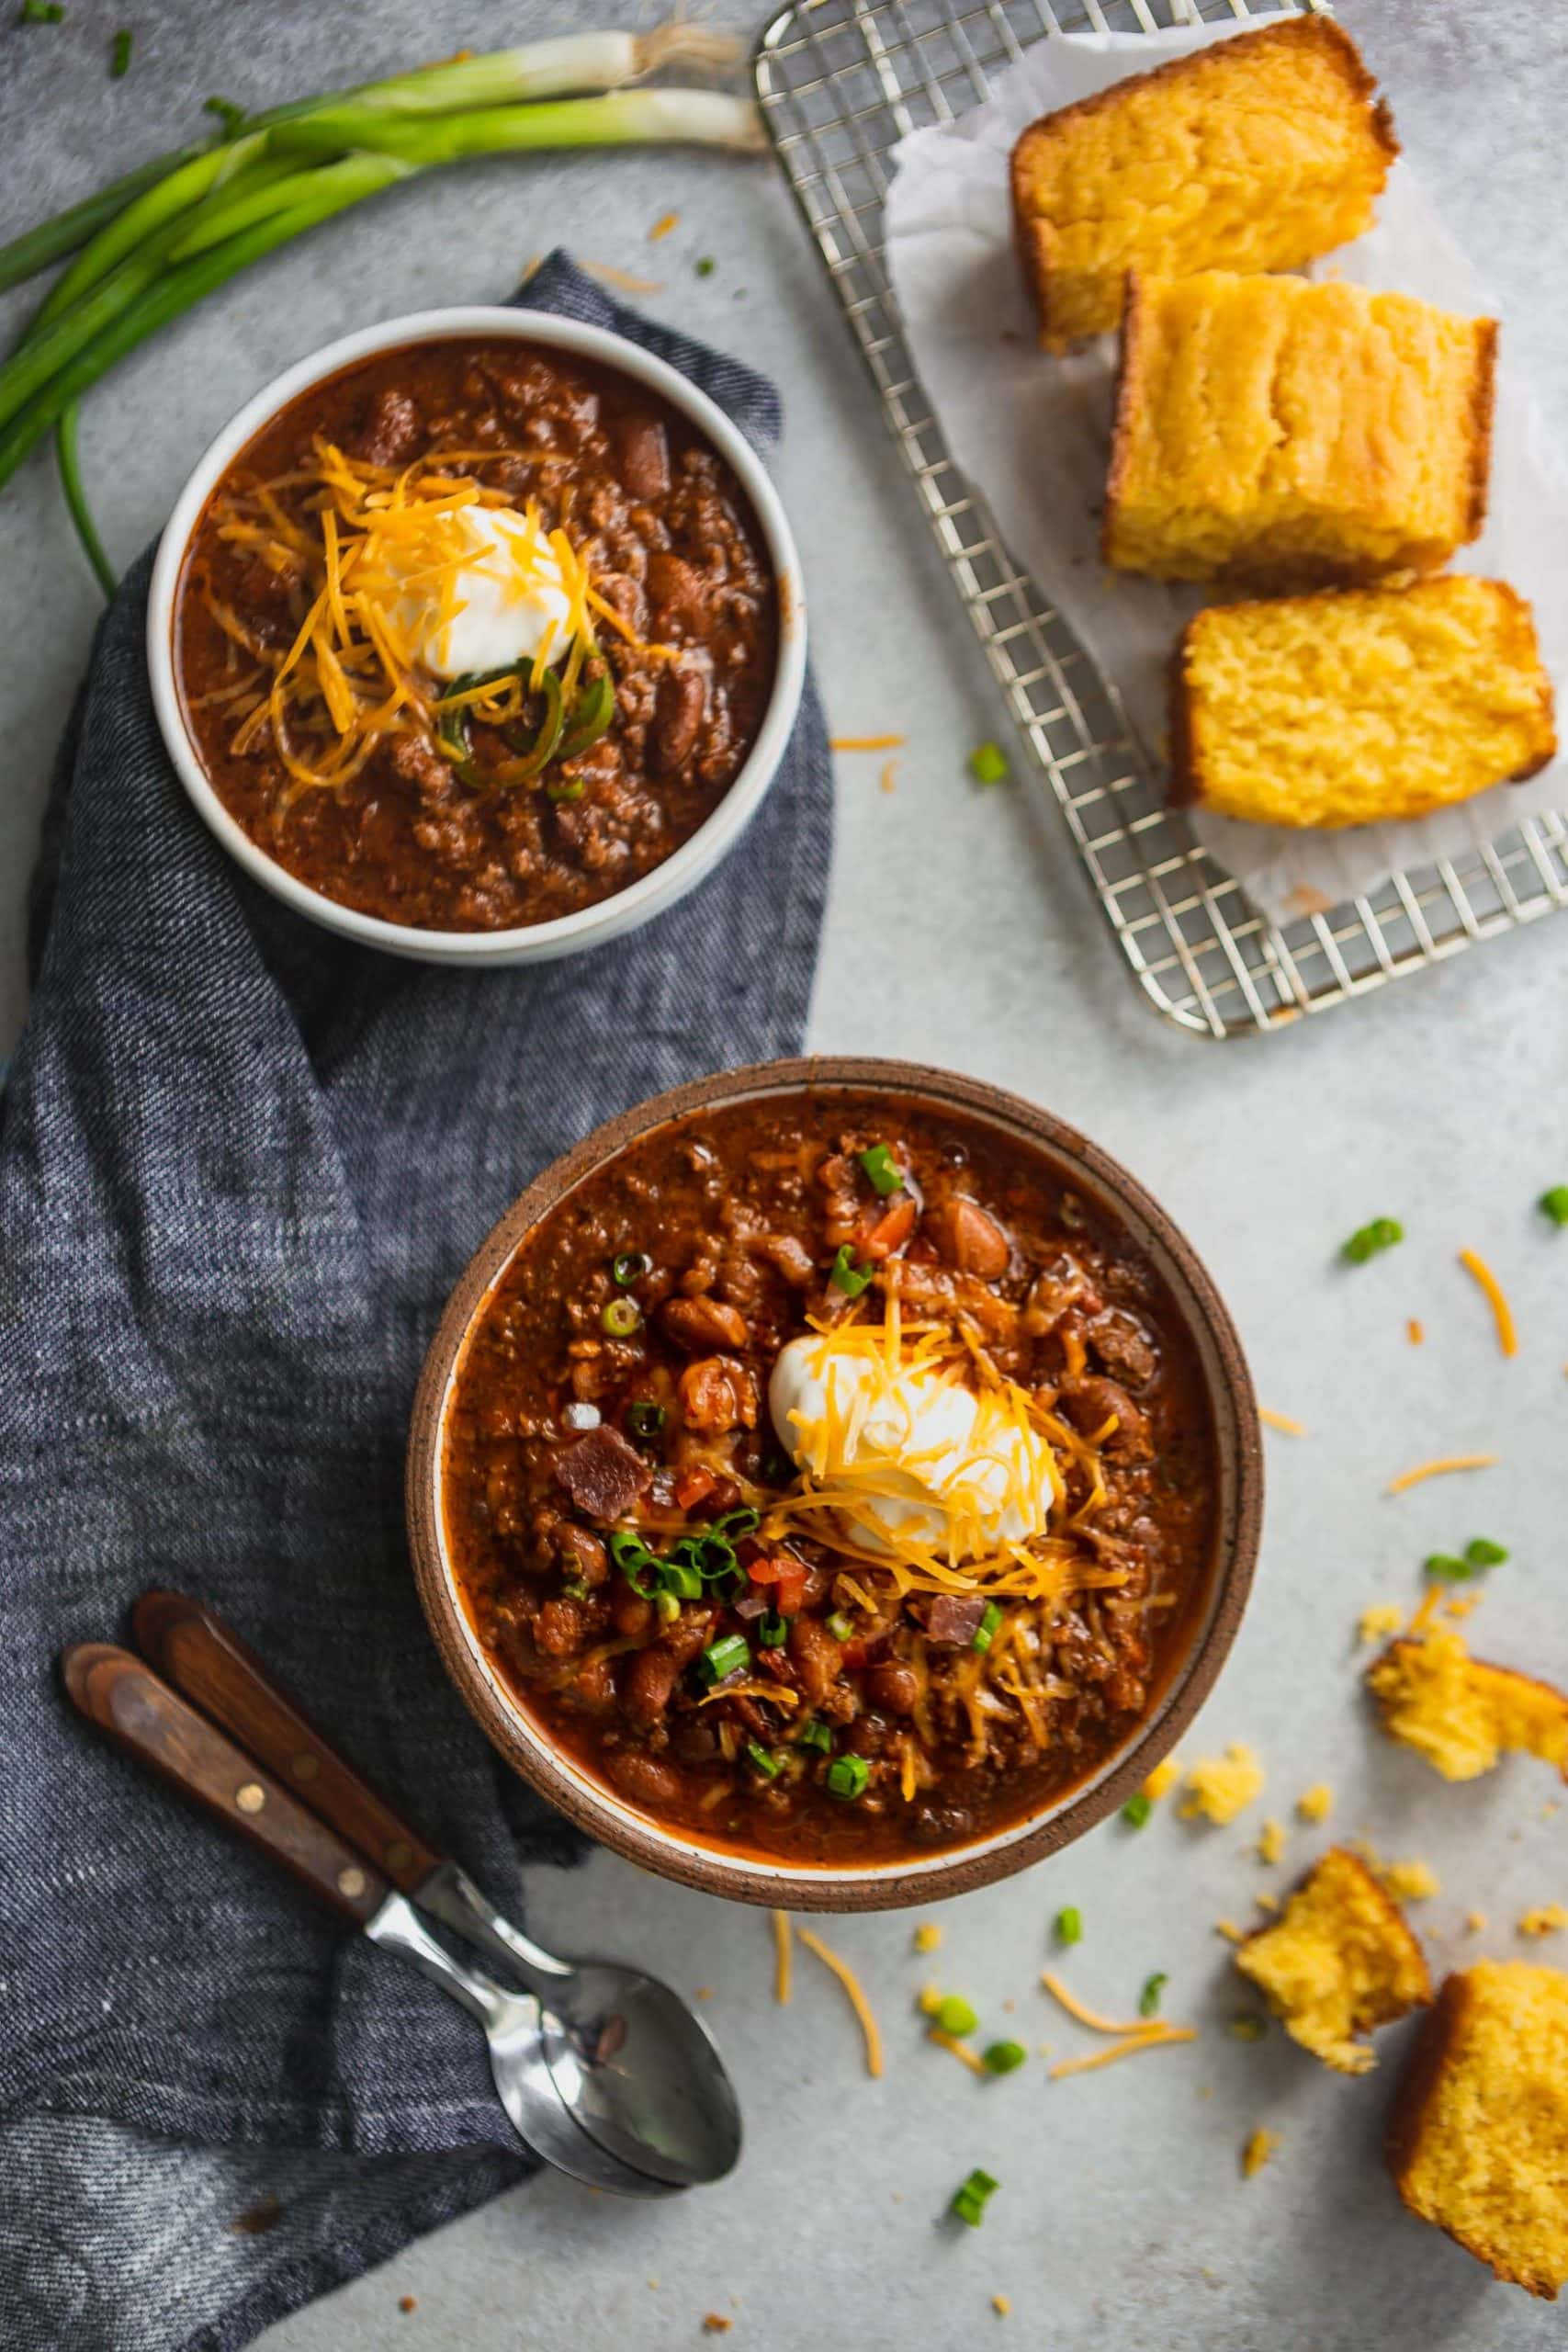 Two bowls of the best chili. The chili is made with beans, ground beef and herbs and spices. It is topped with sour cream and grated cheese.